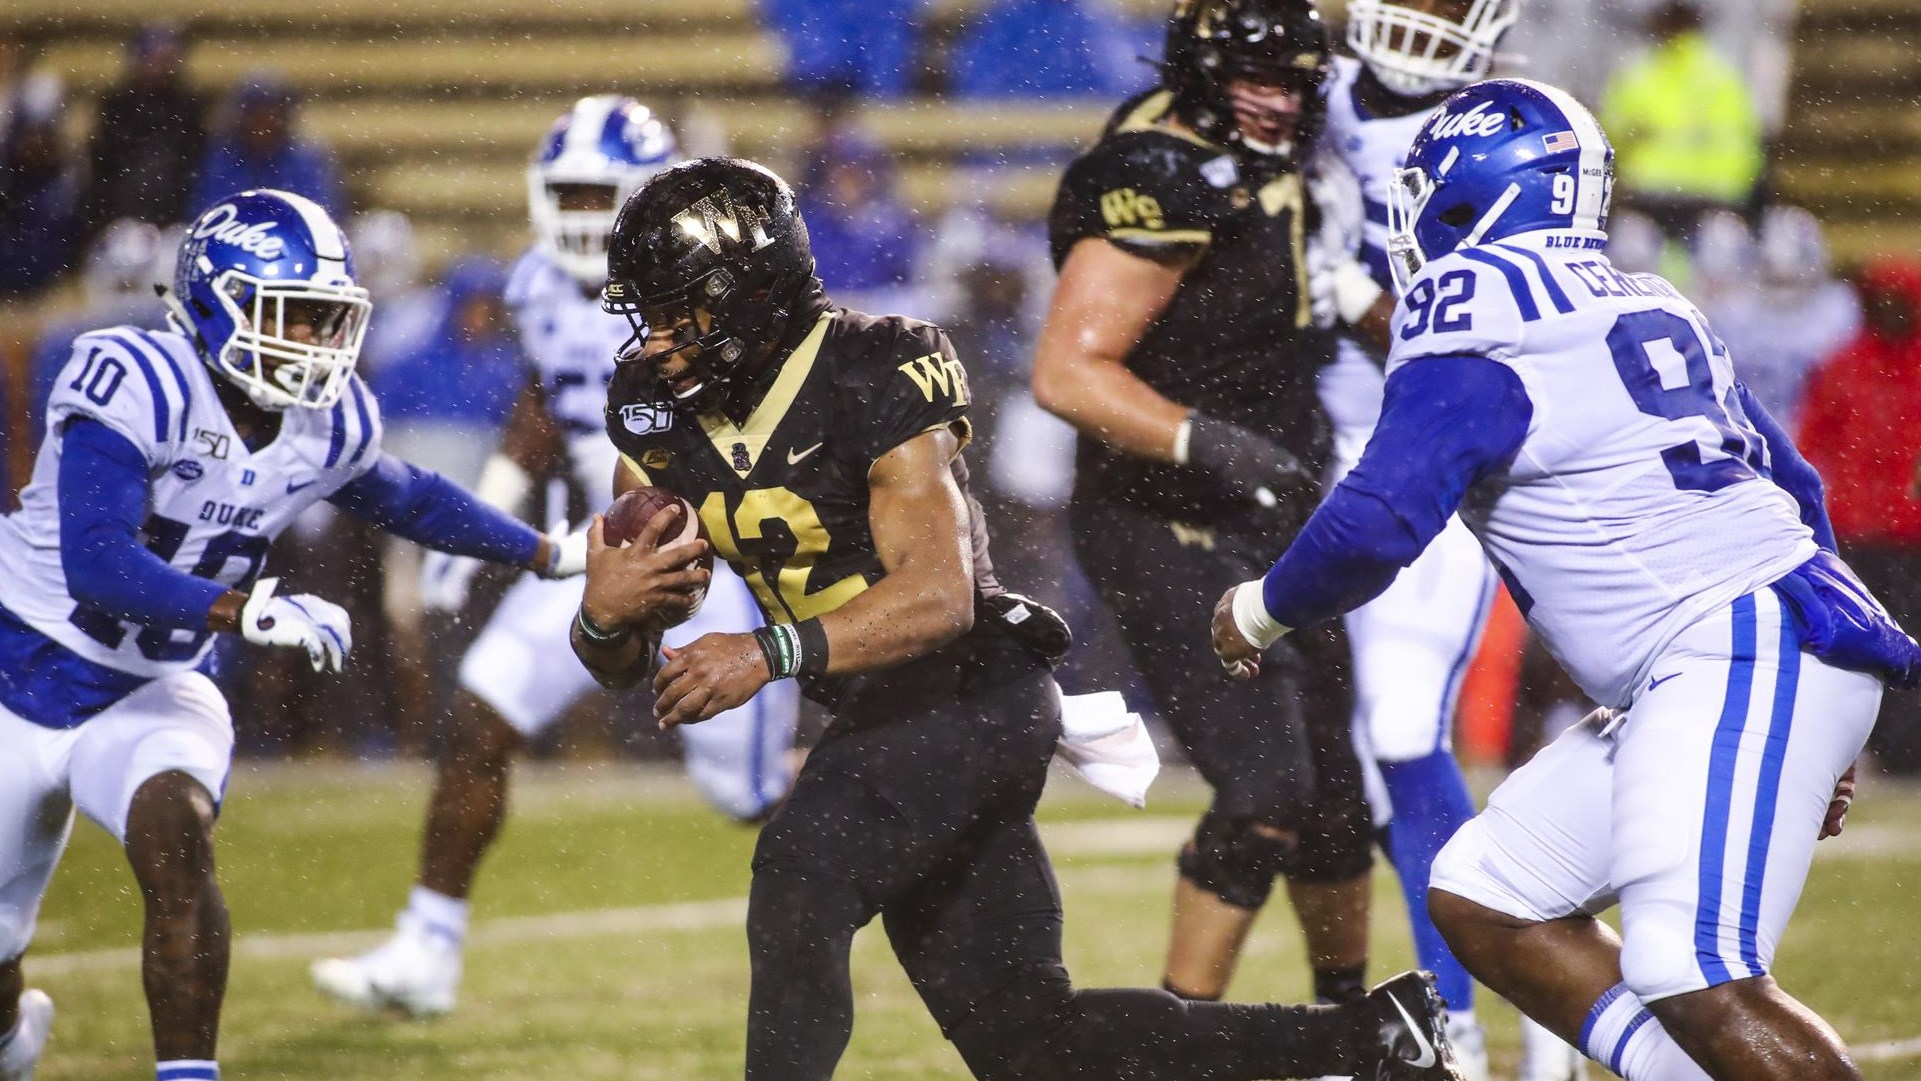 Photo: Jamie Newman (12), Wake Forest Athletics